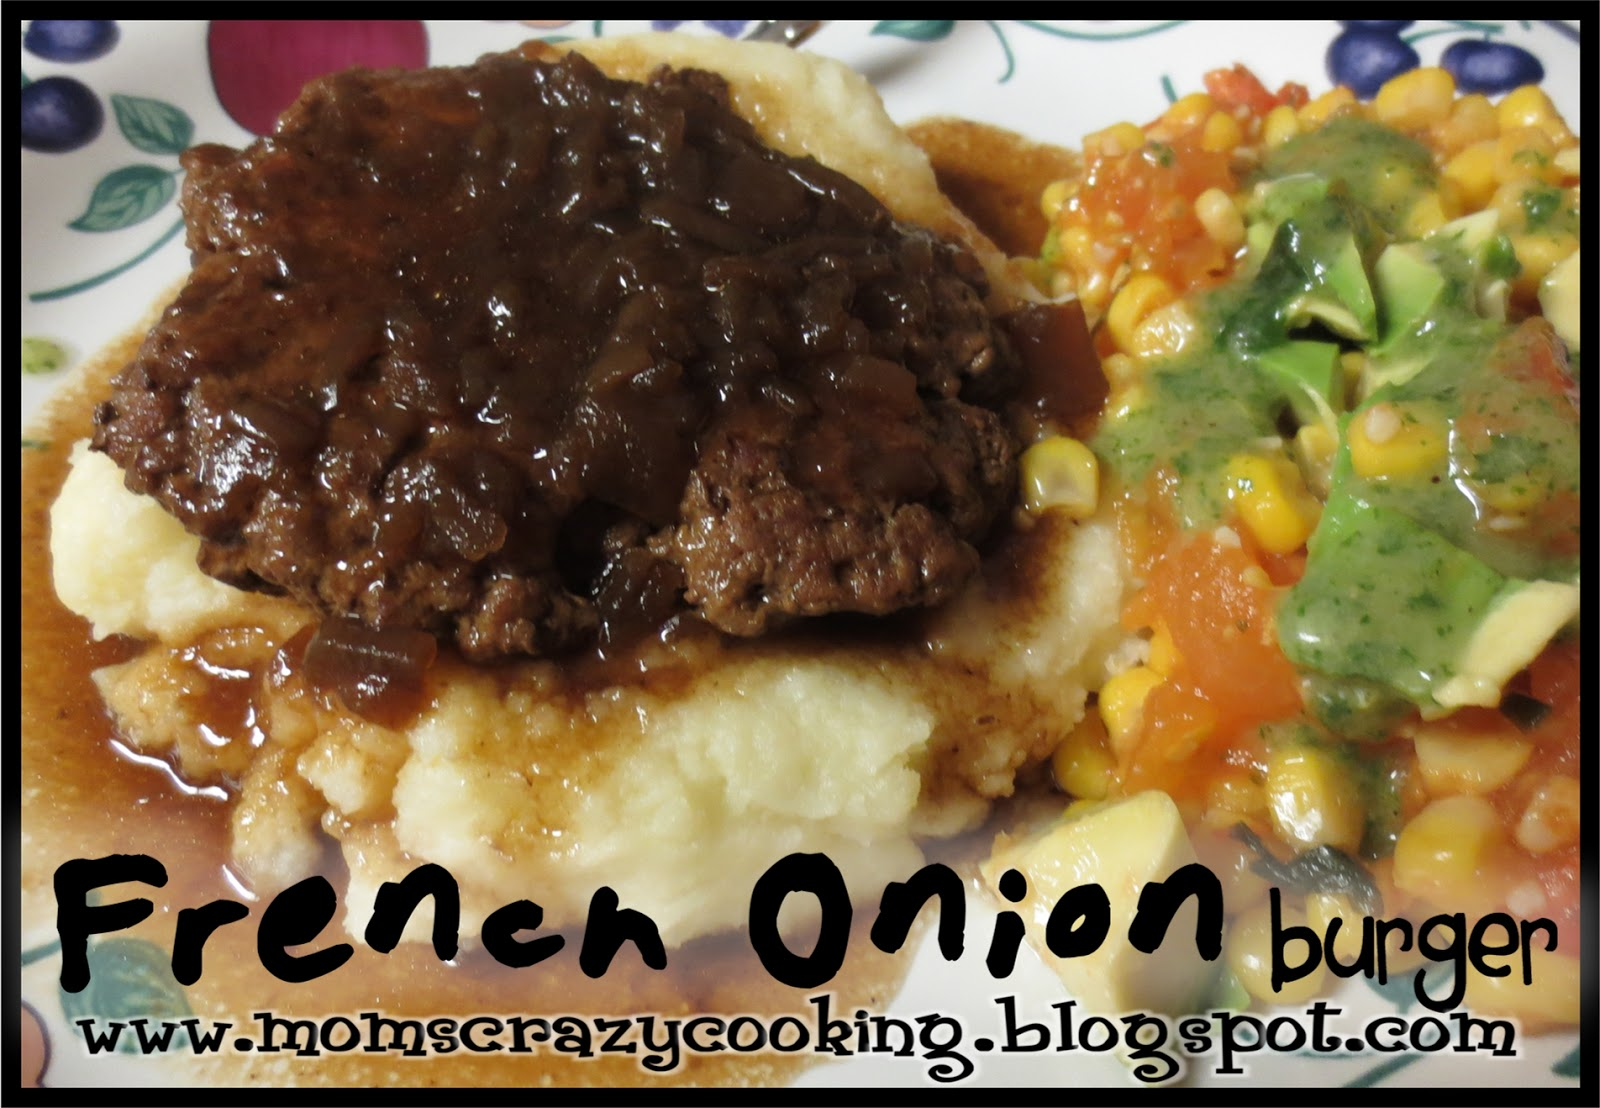 Campbell Kitchen Recipe Moms Crazy Cooking French Onion Burger Or Salisbury Steak Style